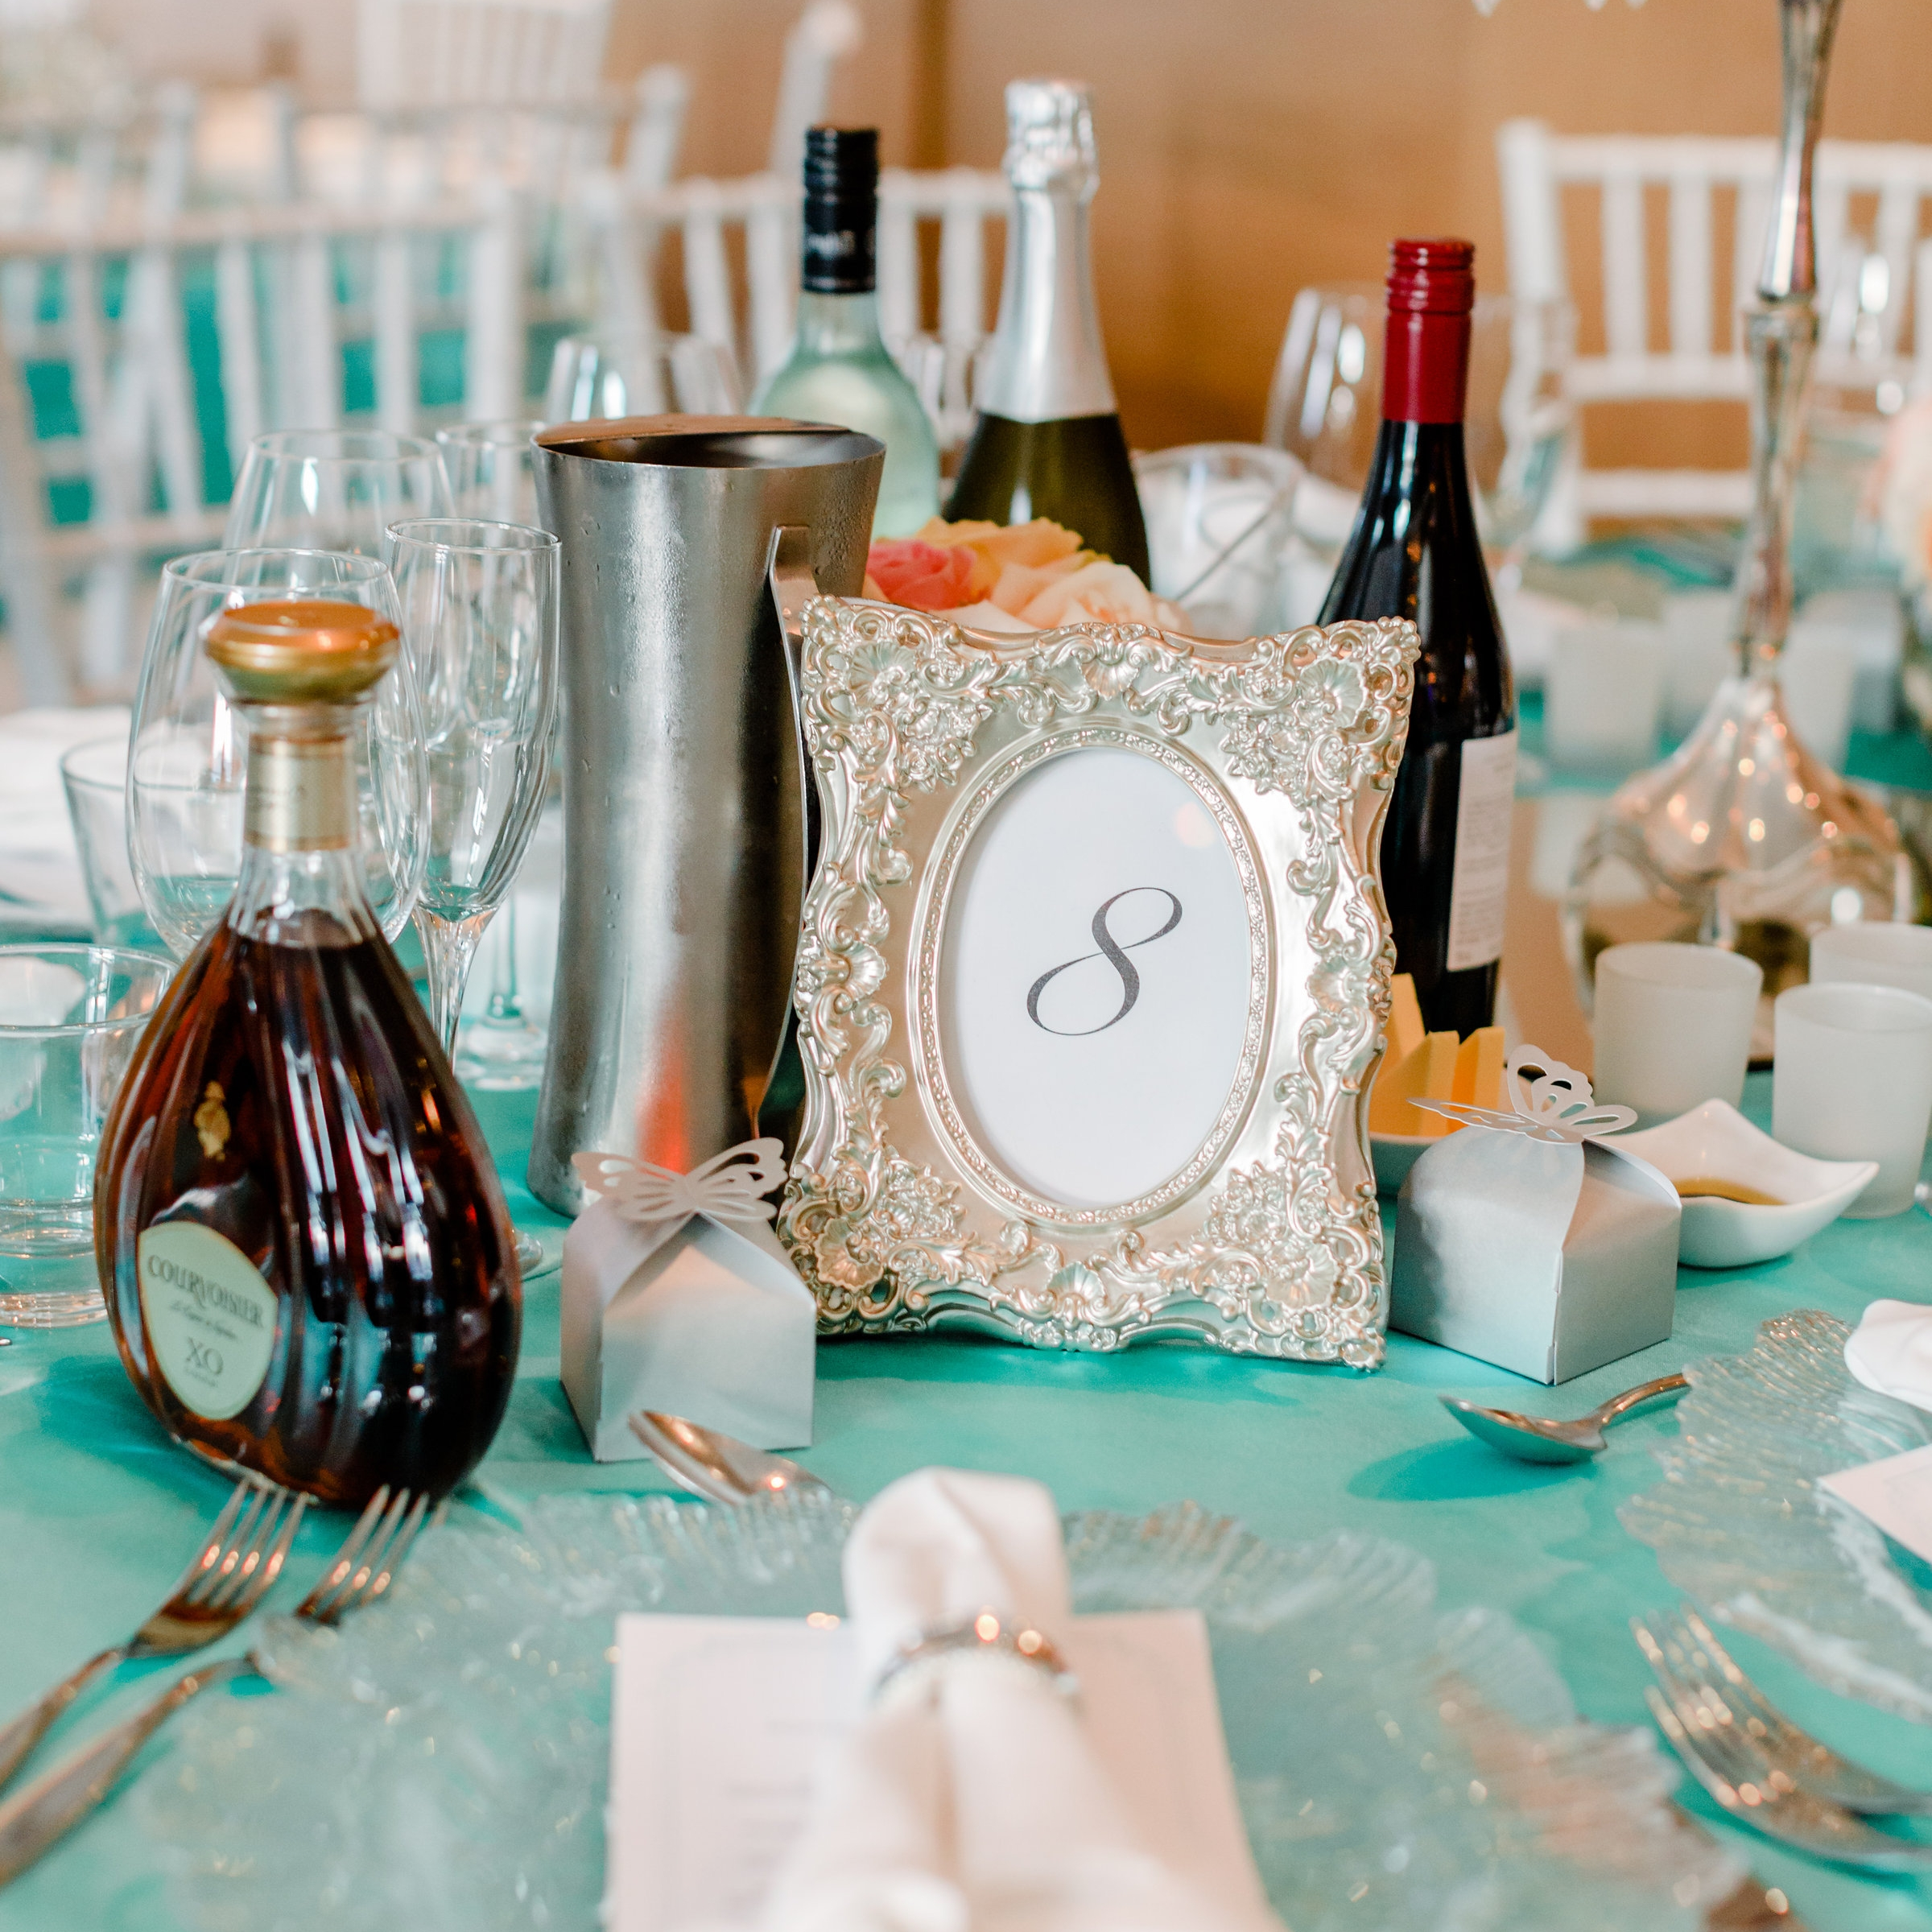 victorian_ornate_table_number_sydney_weddings_event_decor.jpg.jpg